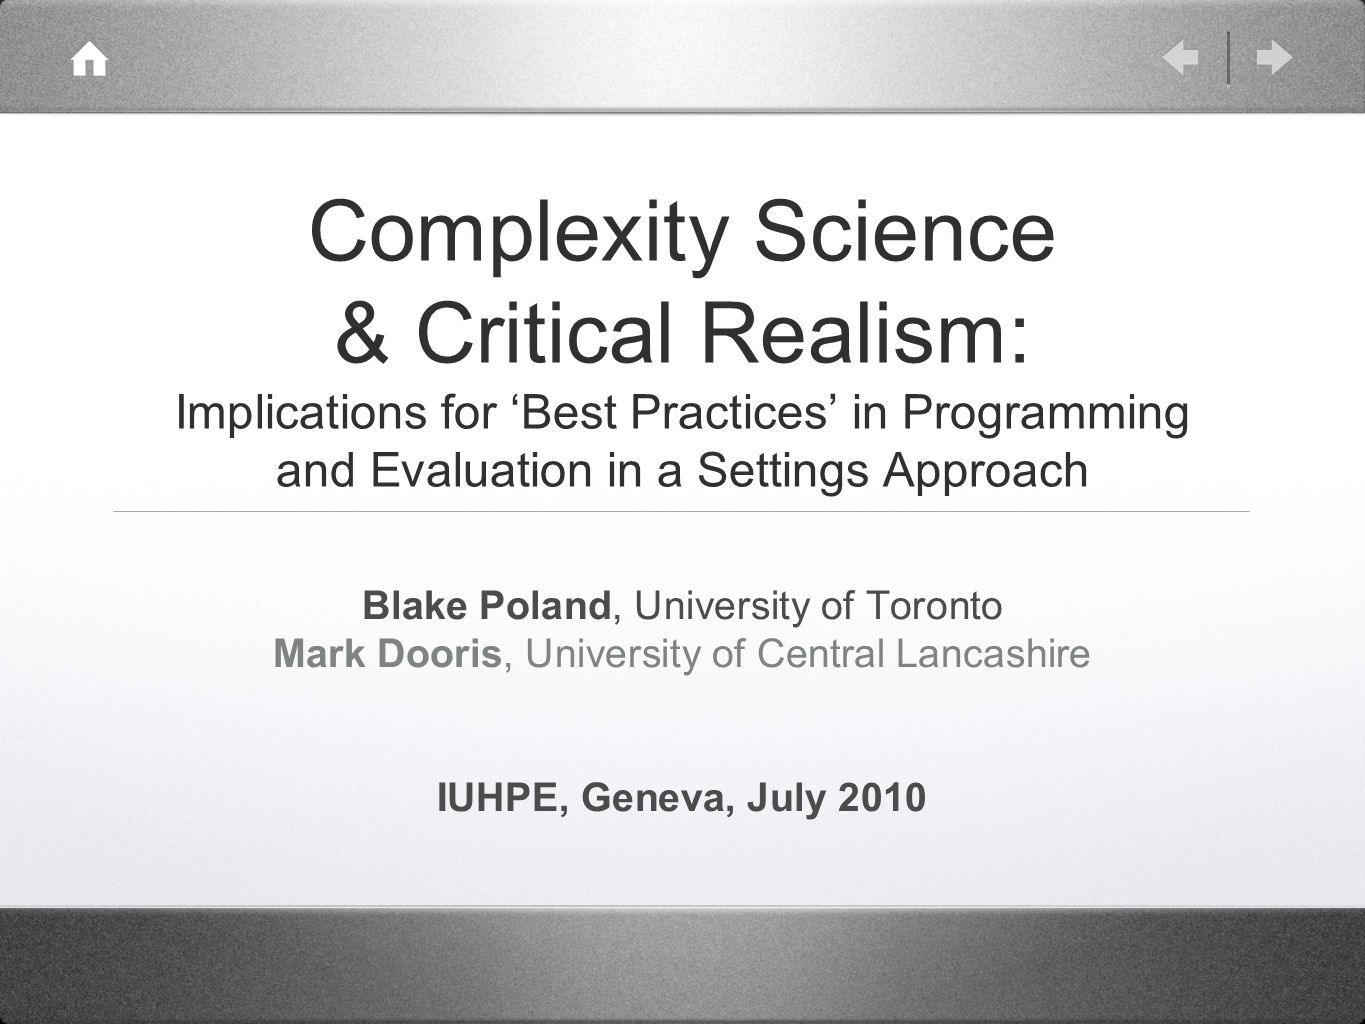 Complexity Science & Critical Realism: Implications for Best Practices in Programming and Evaluation in a Settings Approach Blake Poland, University of Toronto Mark Dooris, University of Central Lancashire IUHPE, Geneva, July 2010